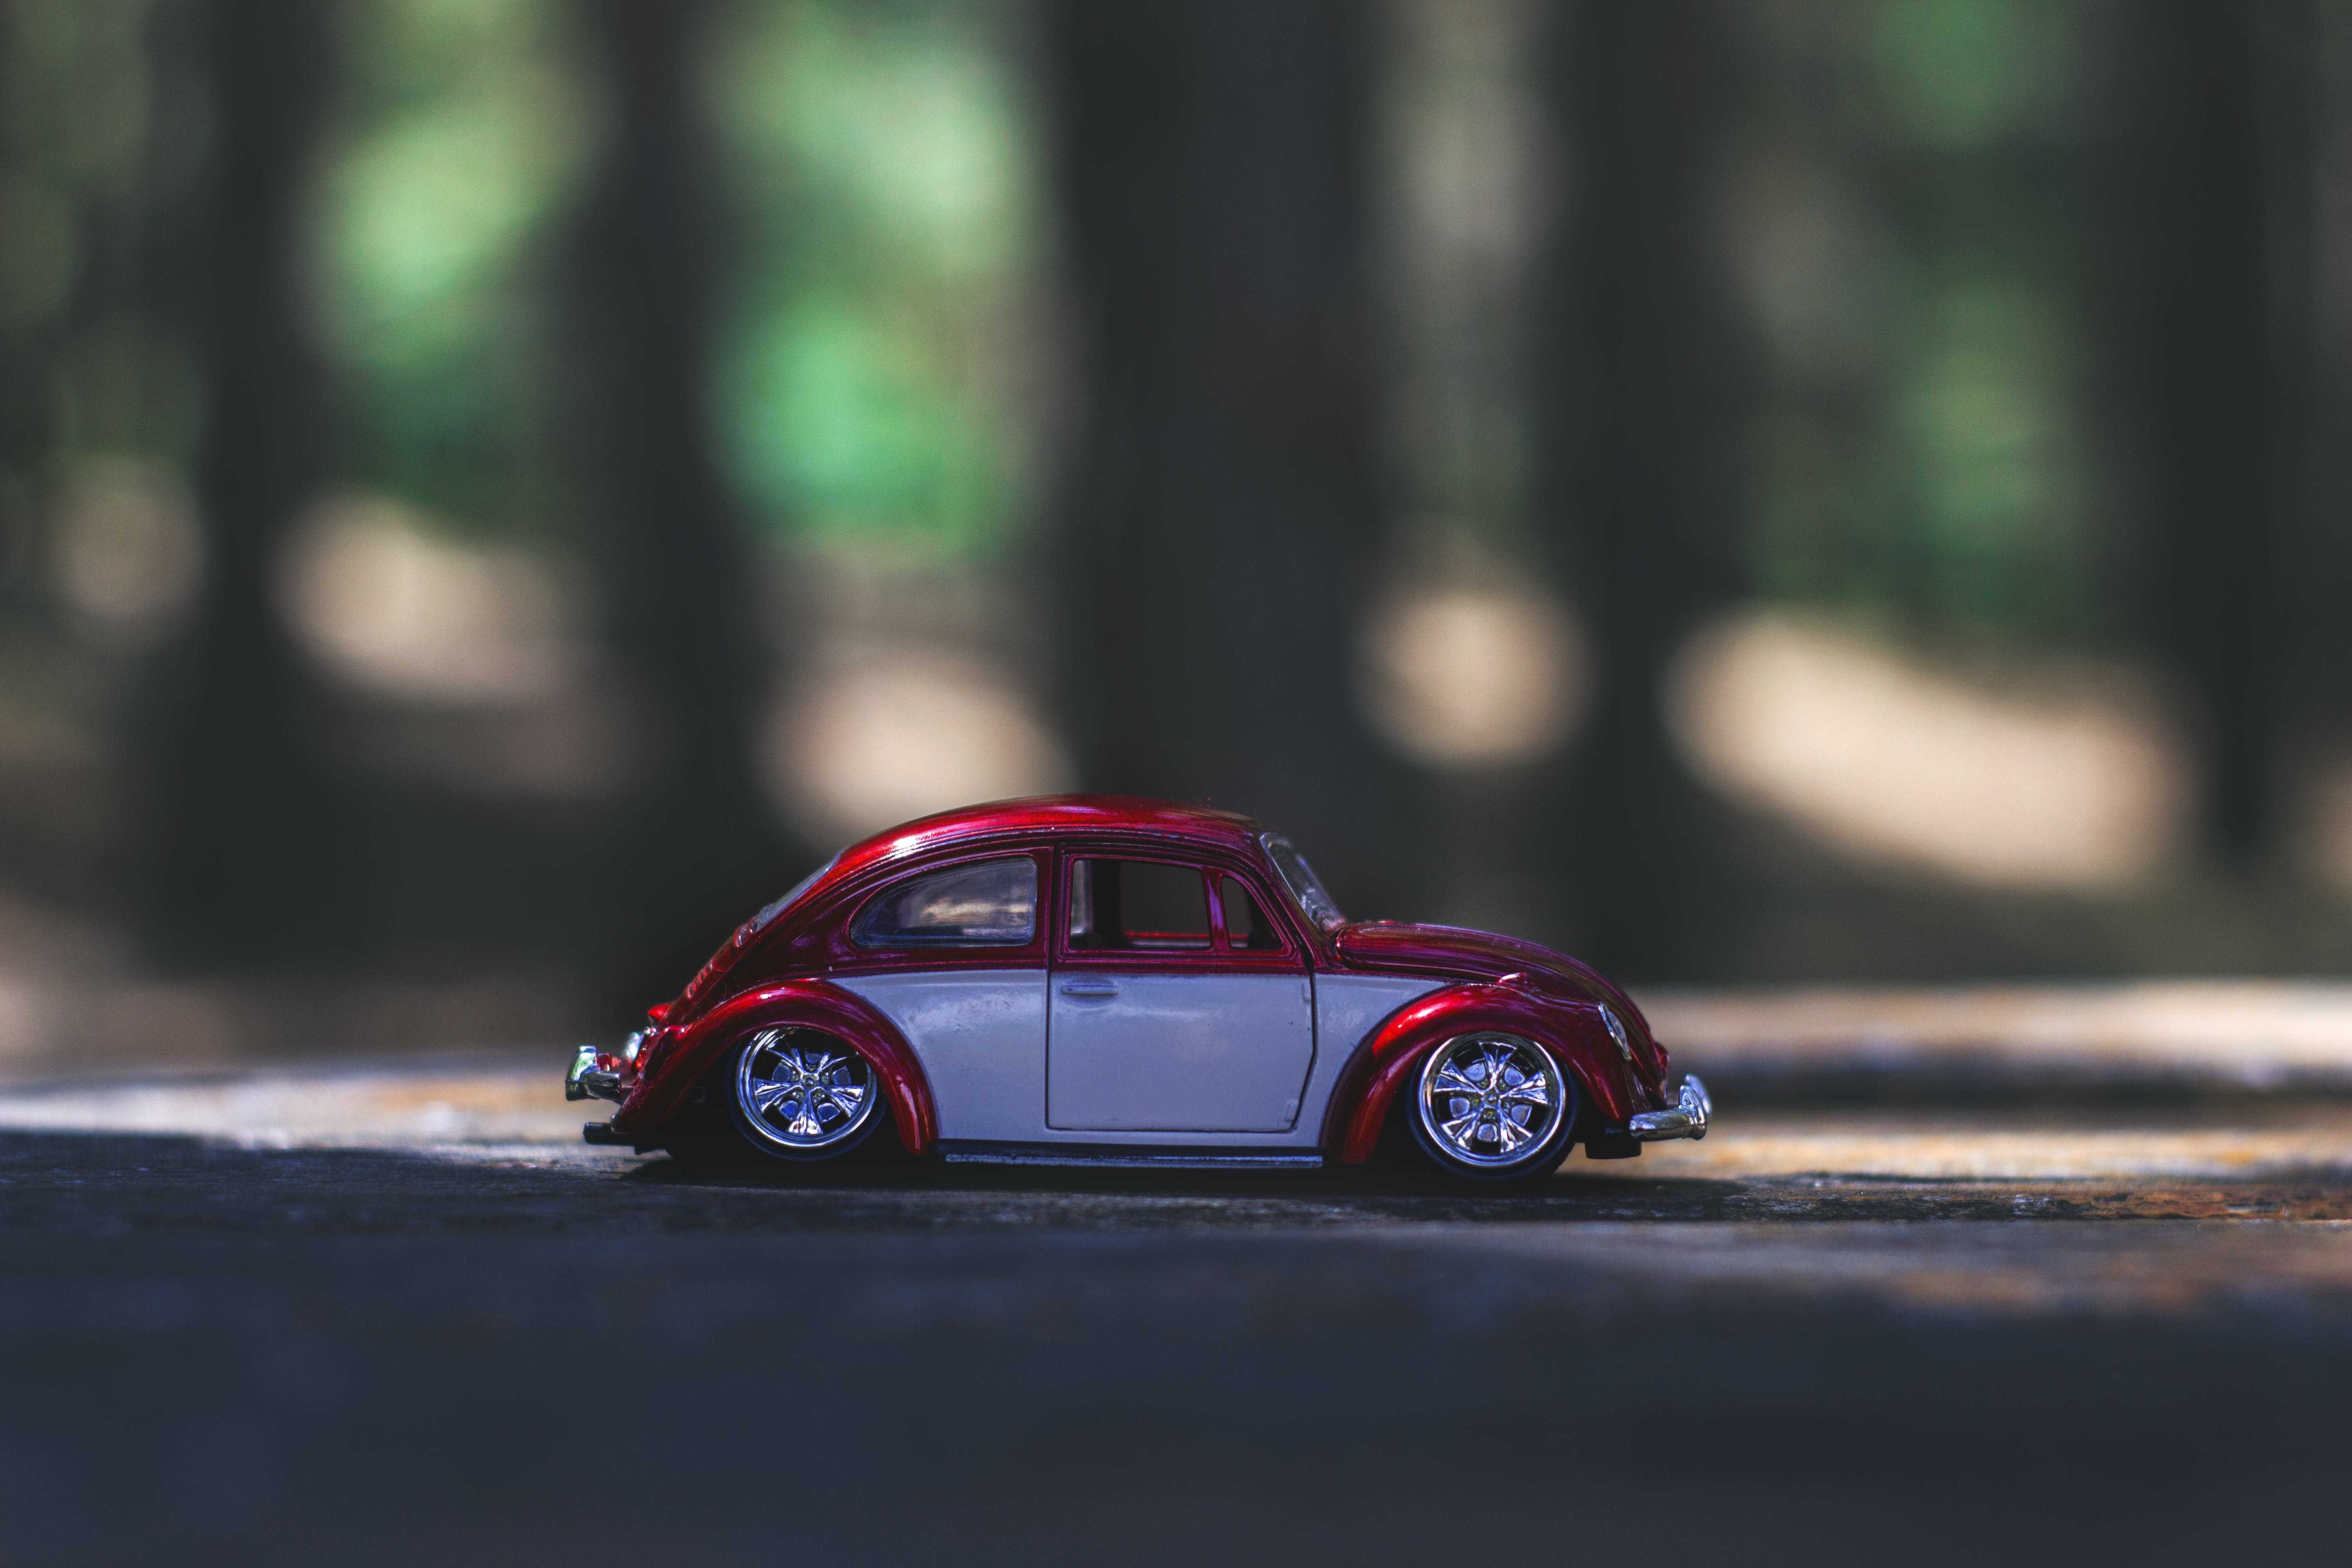 Free stock photo of car, vehicle, pavement, toy